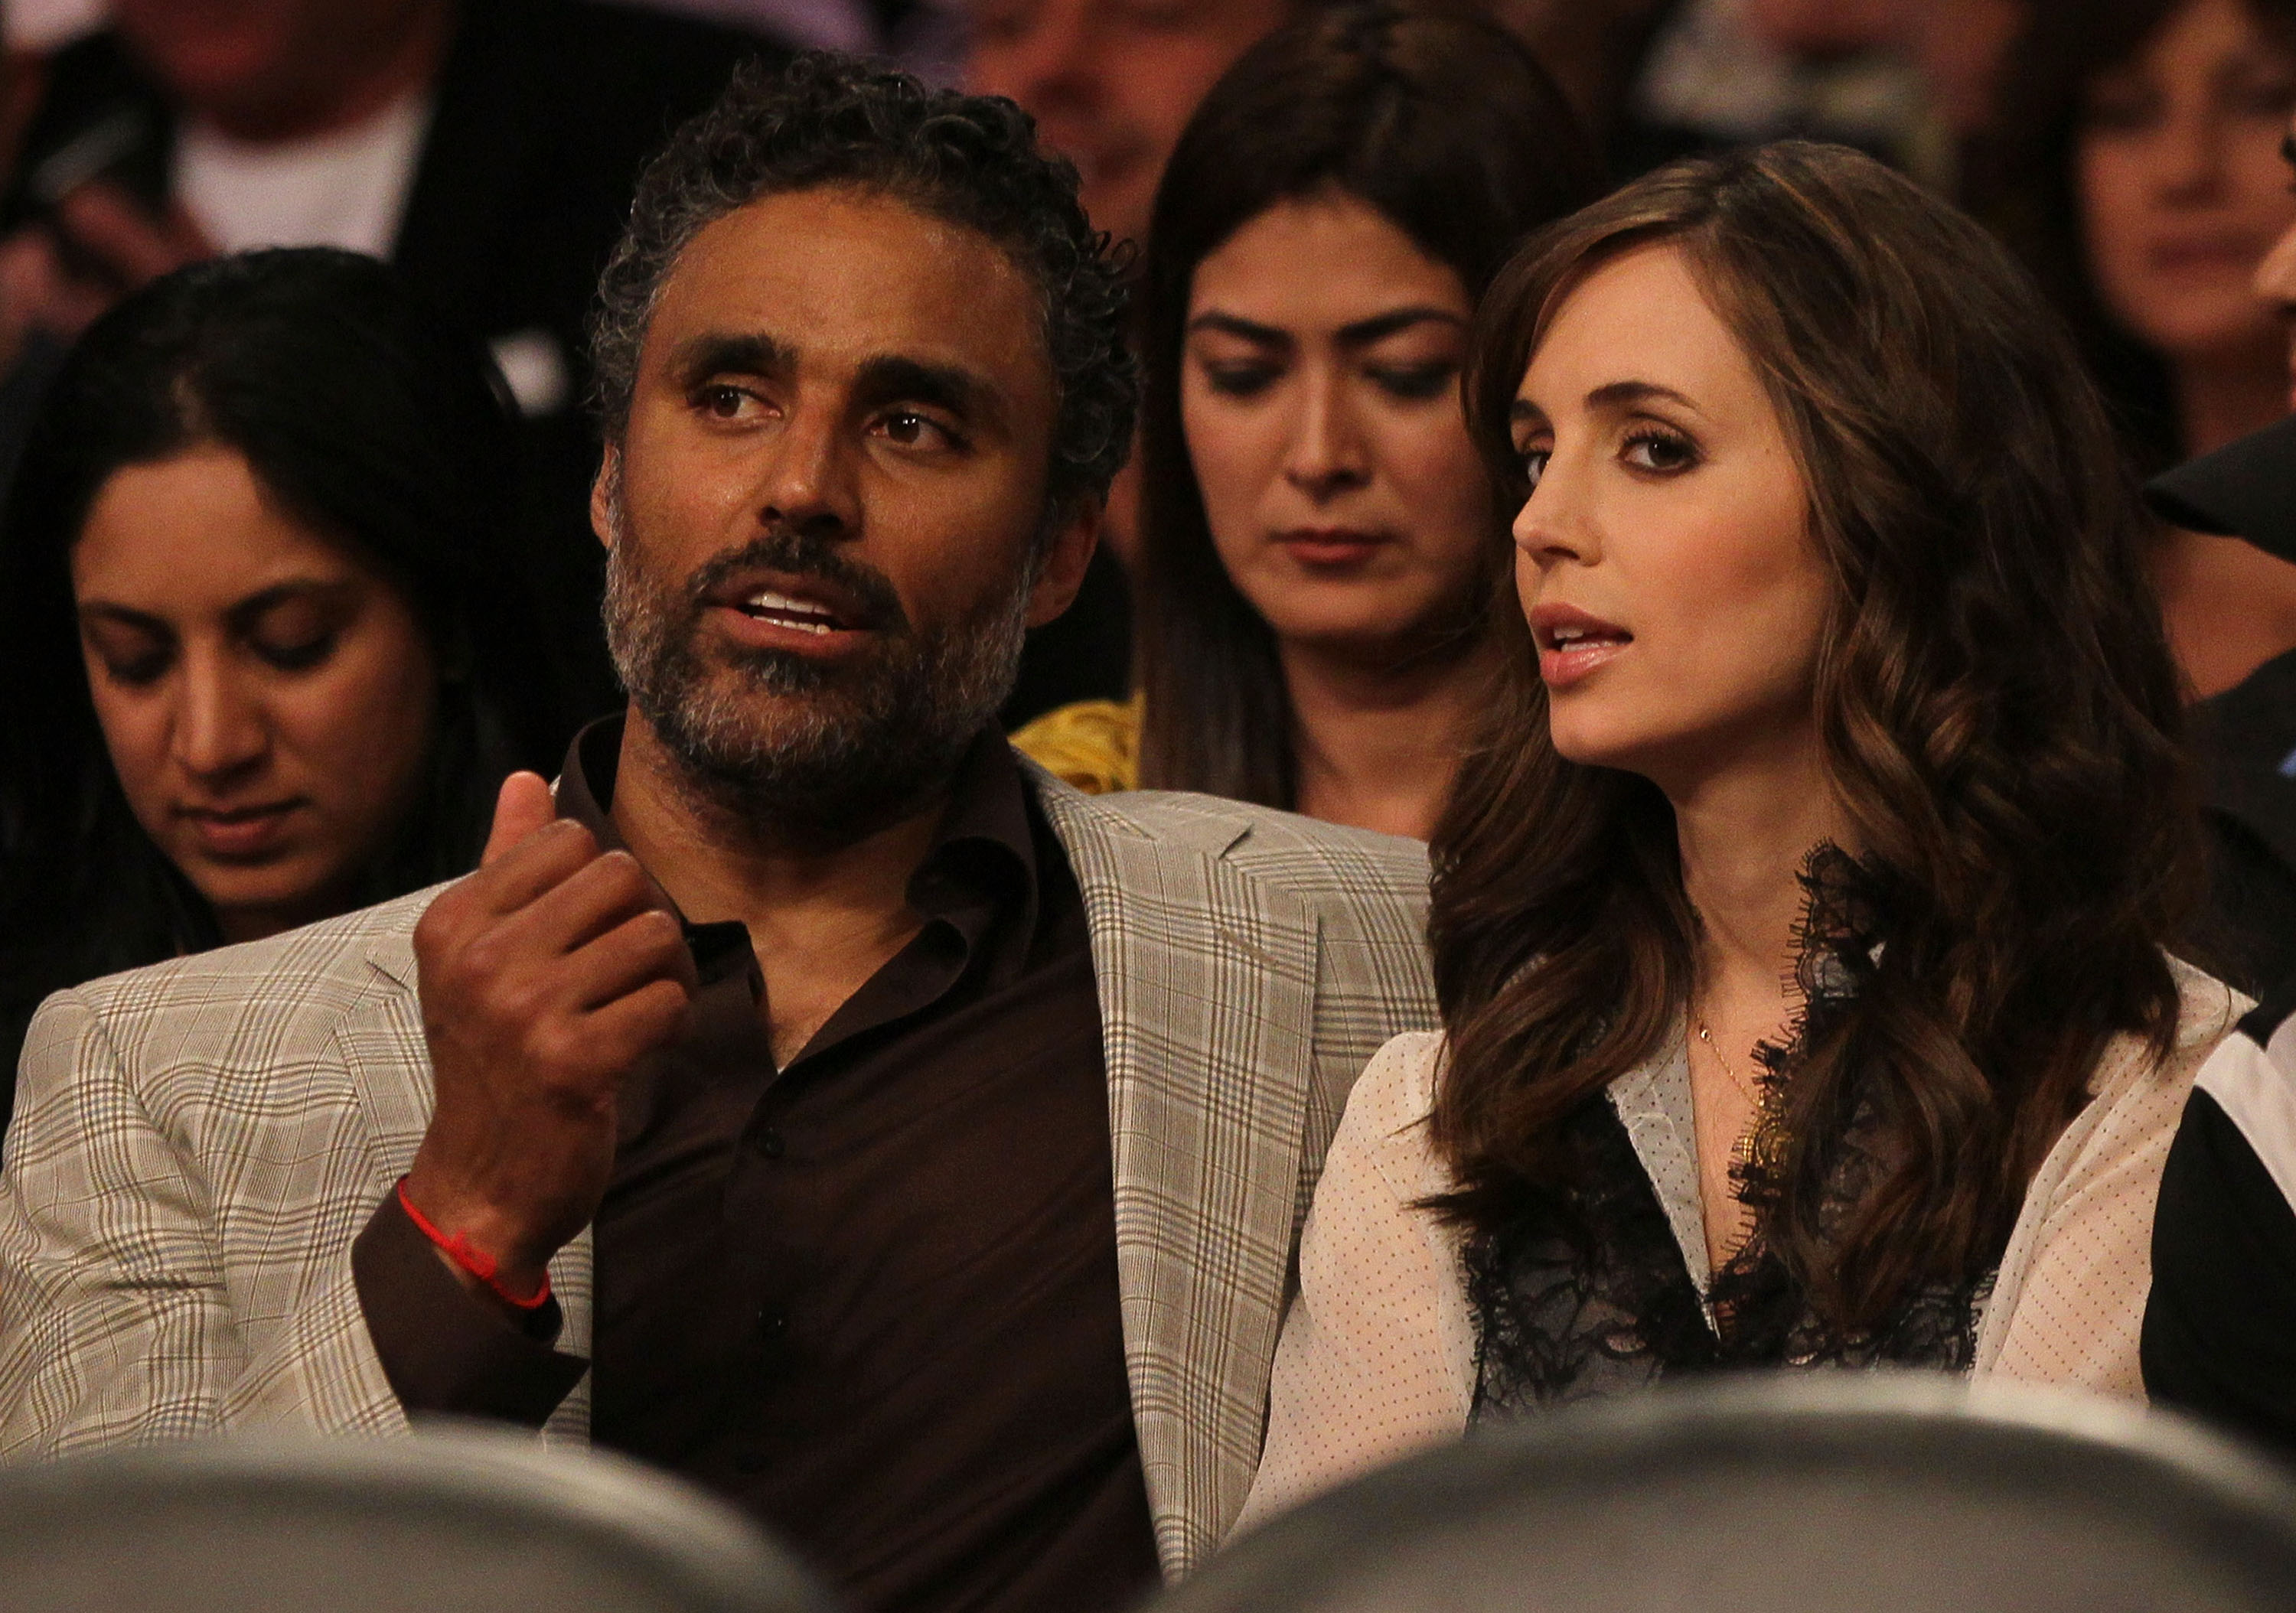 LOS ANGELES, CA - MAY 19:  Former NBA star Rick Fox and actress Eliza Dushku watch the Los Angeles Lakers play the Phoenix Suns in Game Two of the Western Conference Finals during the 2010 NBA Playoffs at Staples Center on May 19, 2010 in Los Angeles, Cal